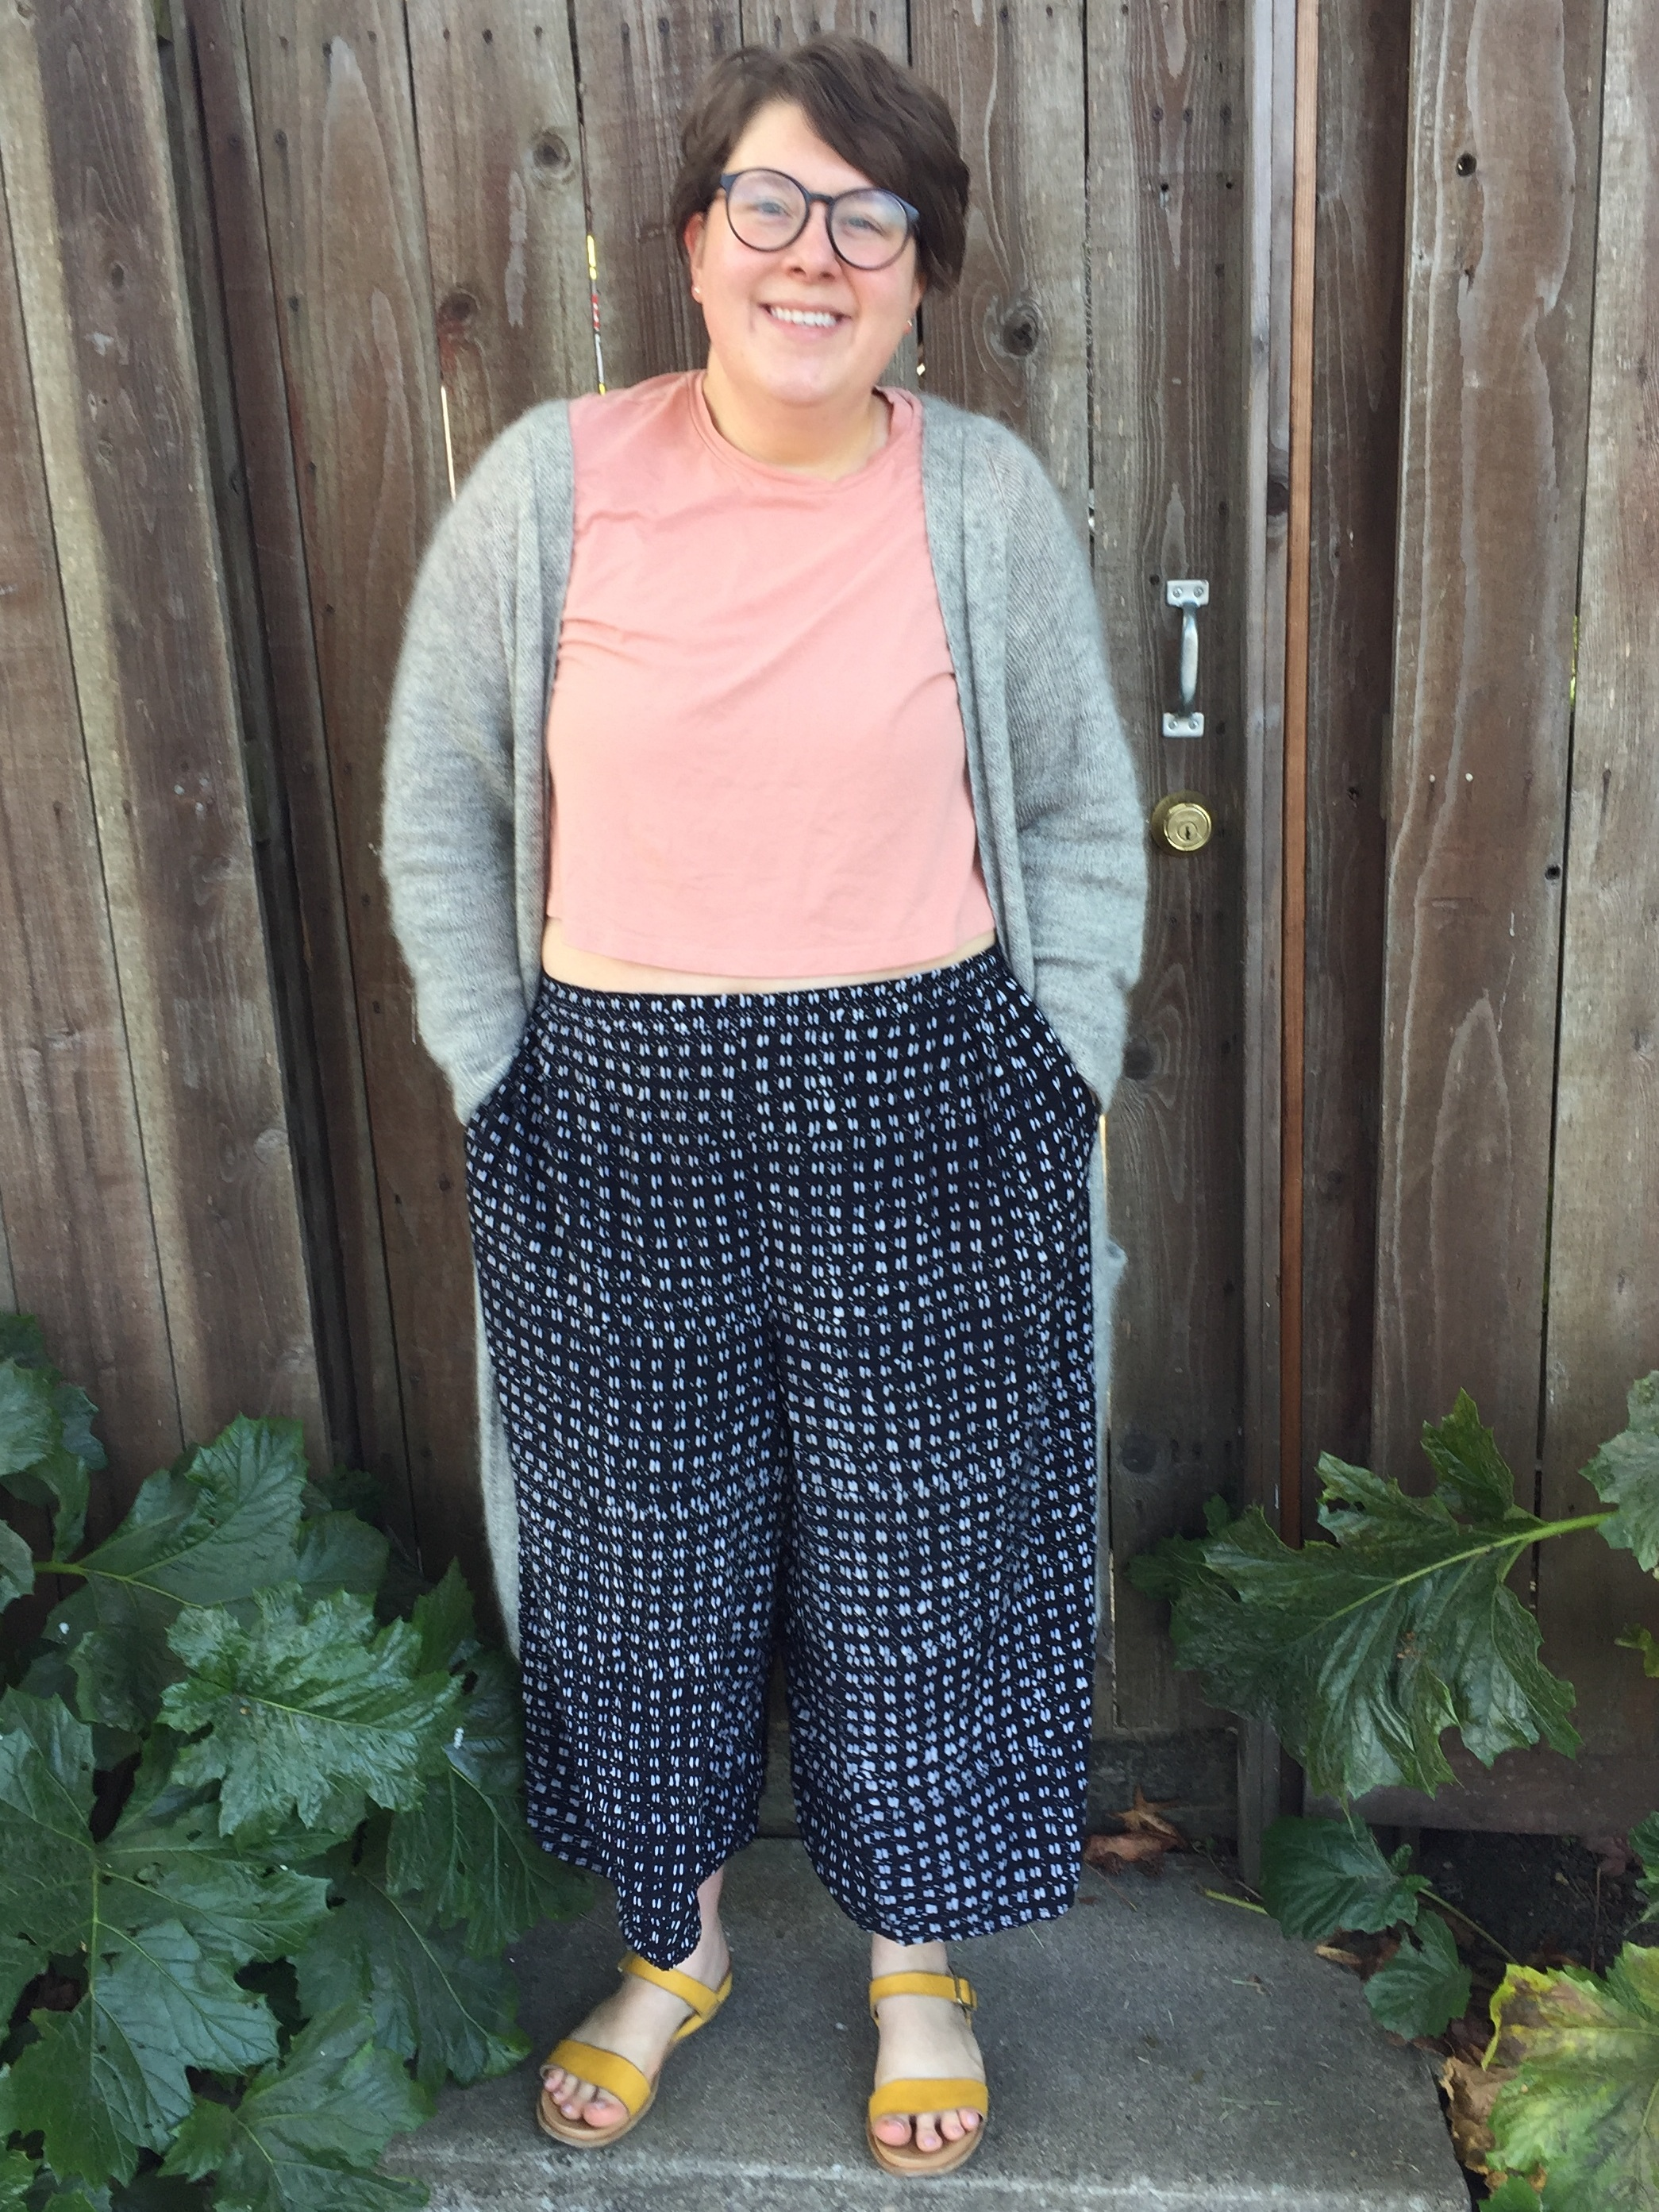 May 3: Mercury Collection Trousers in Rayon, No Frills Cardigan